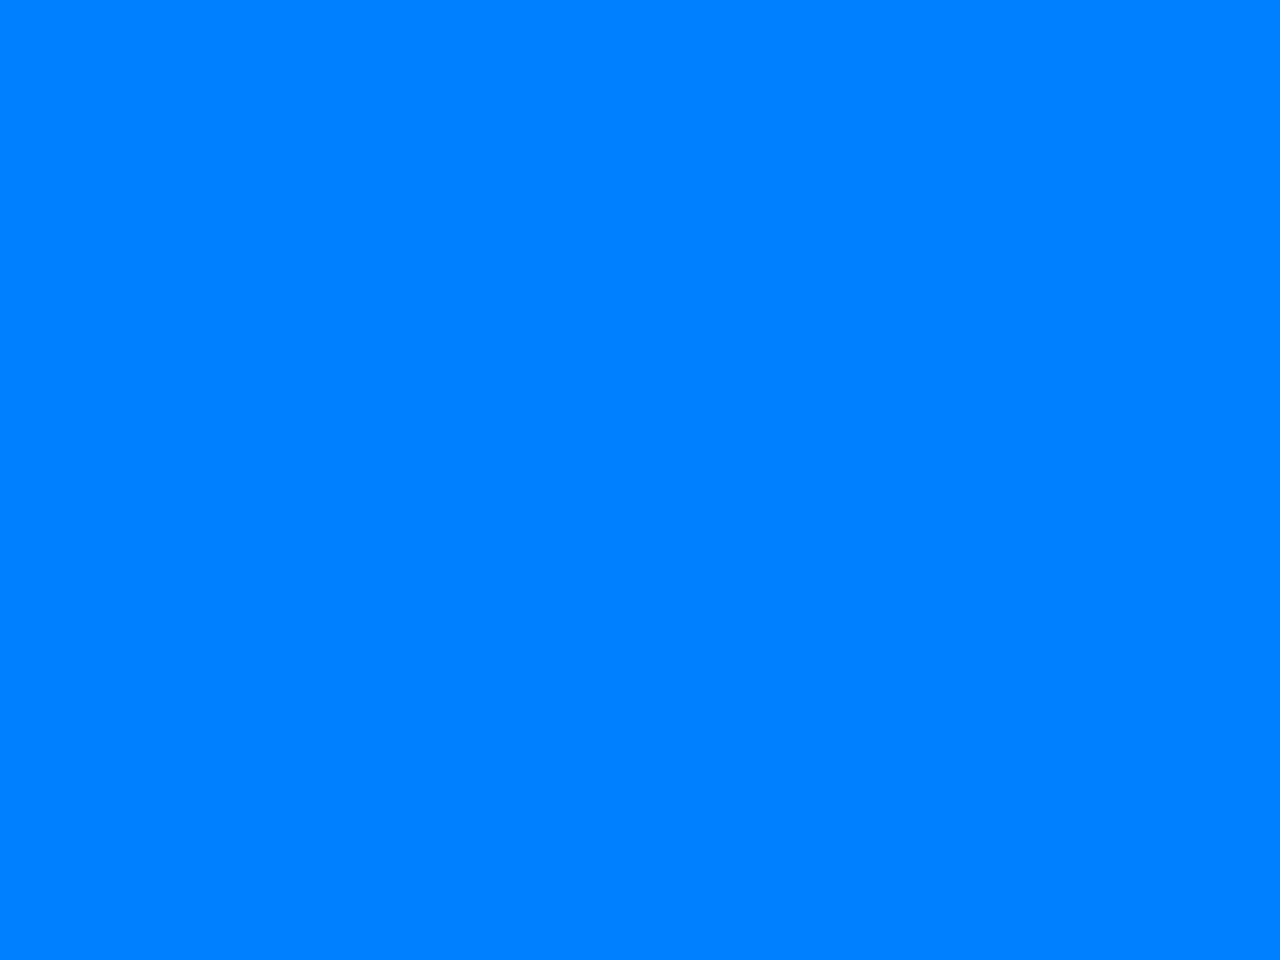 1280x960 Azure Solid Color Background